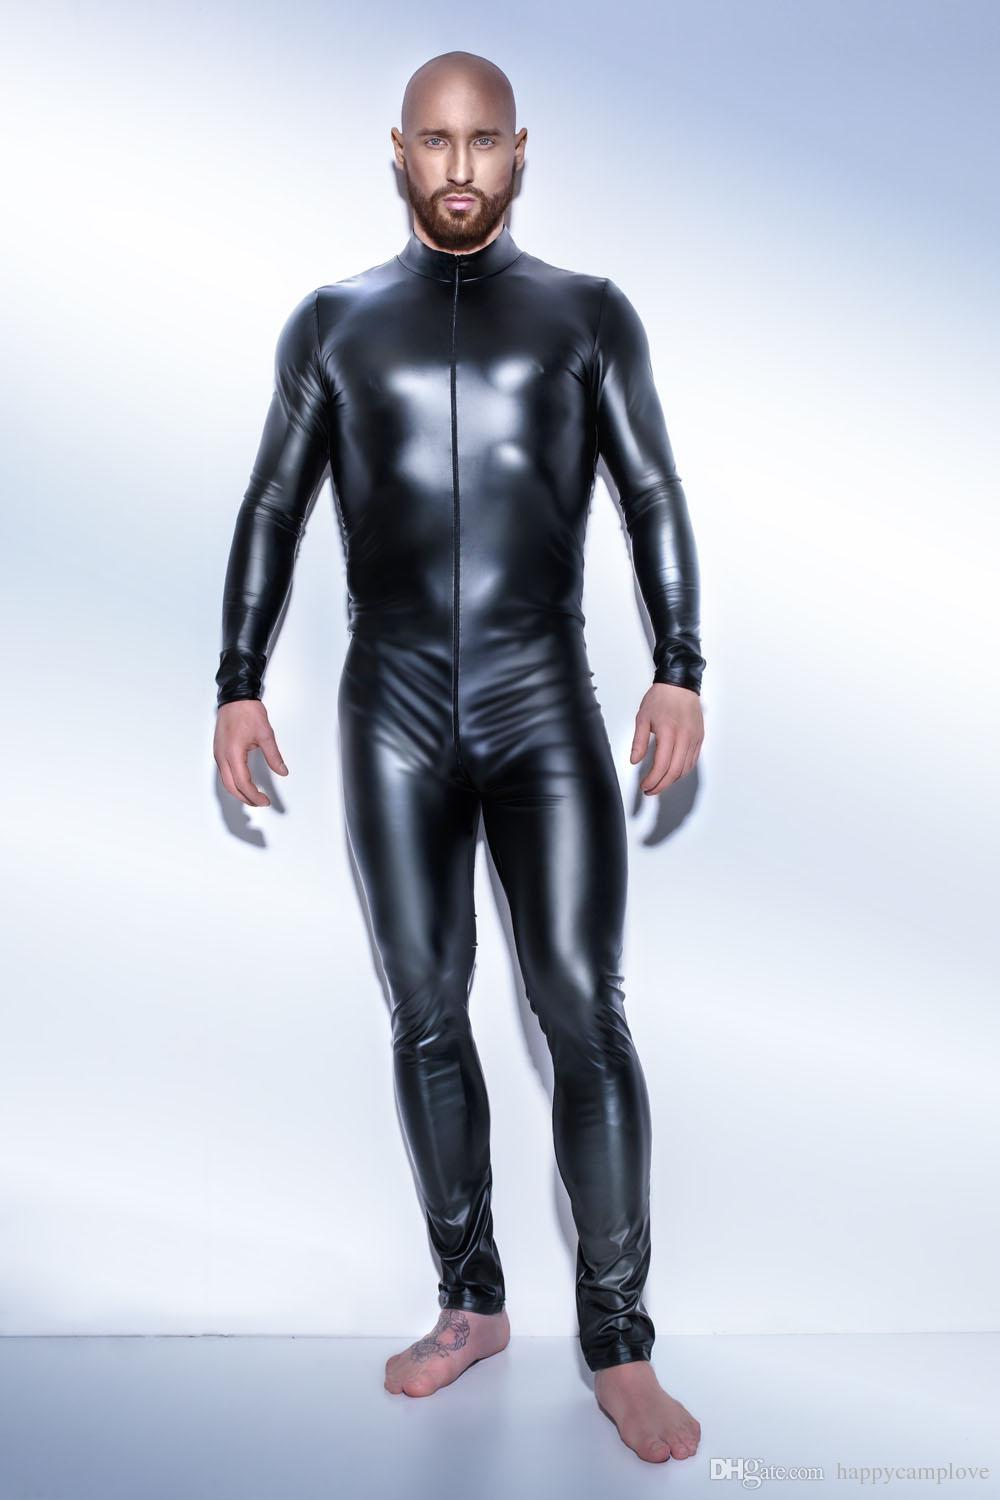 Cheap latex outfits